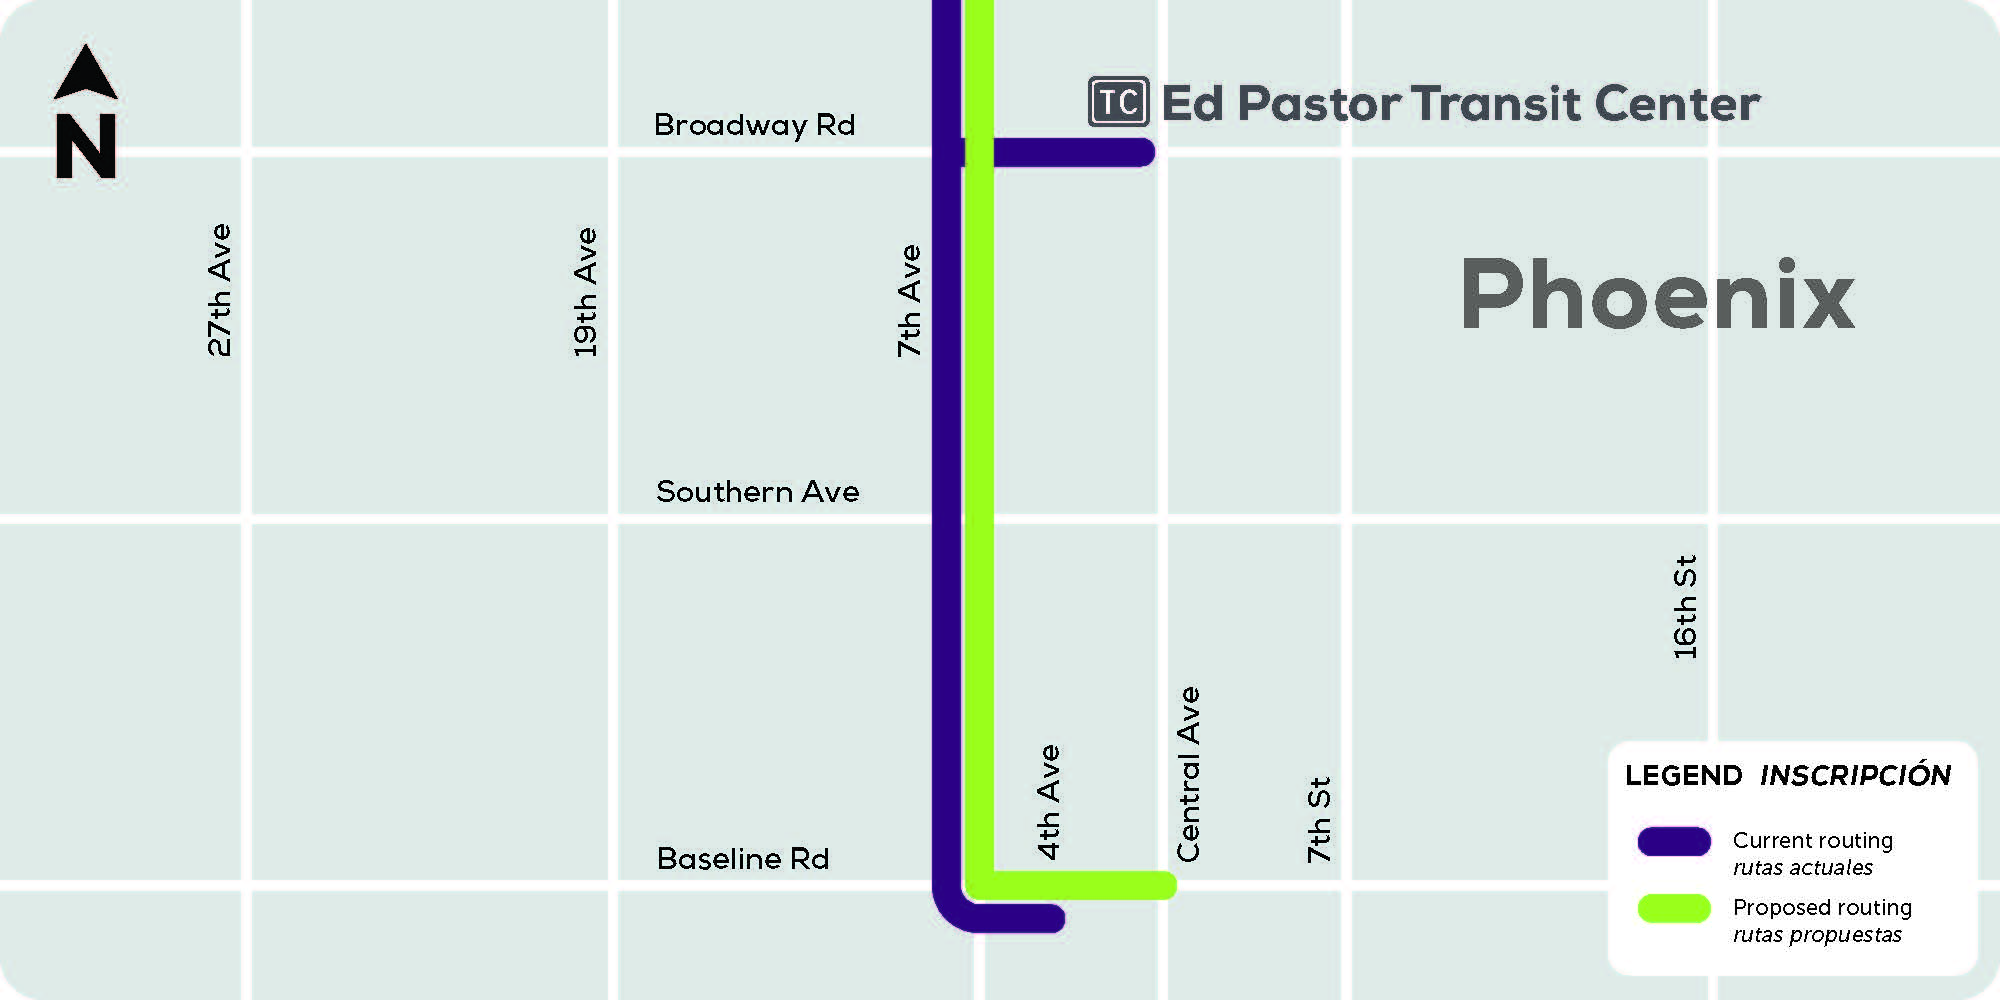 <strong>Route 8—7th Ave</strong>